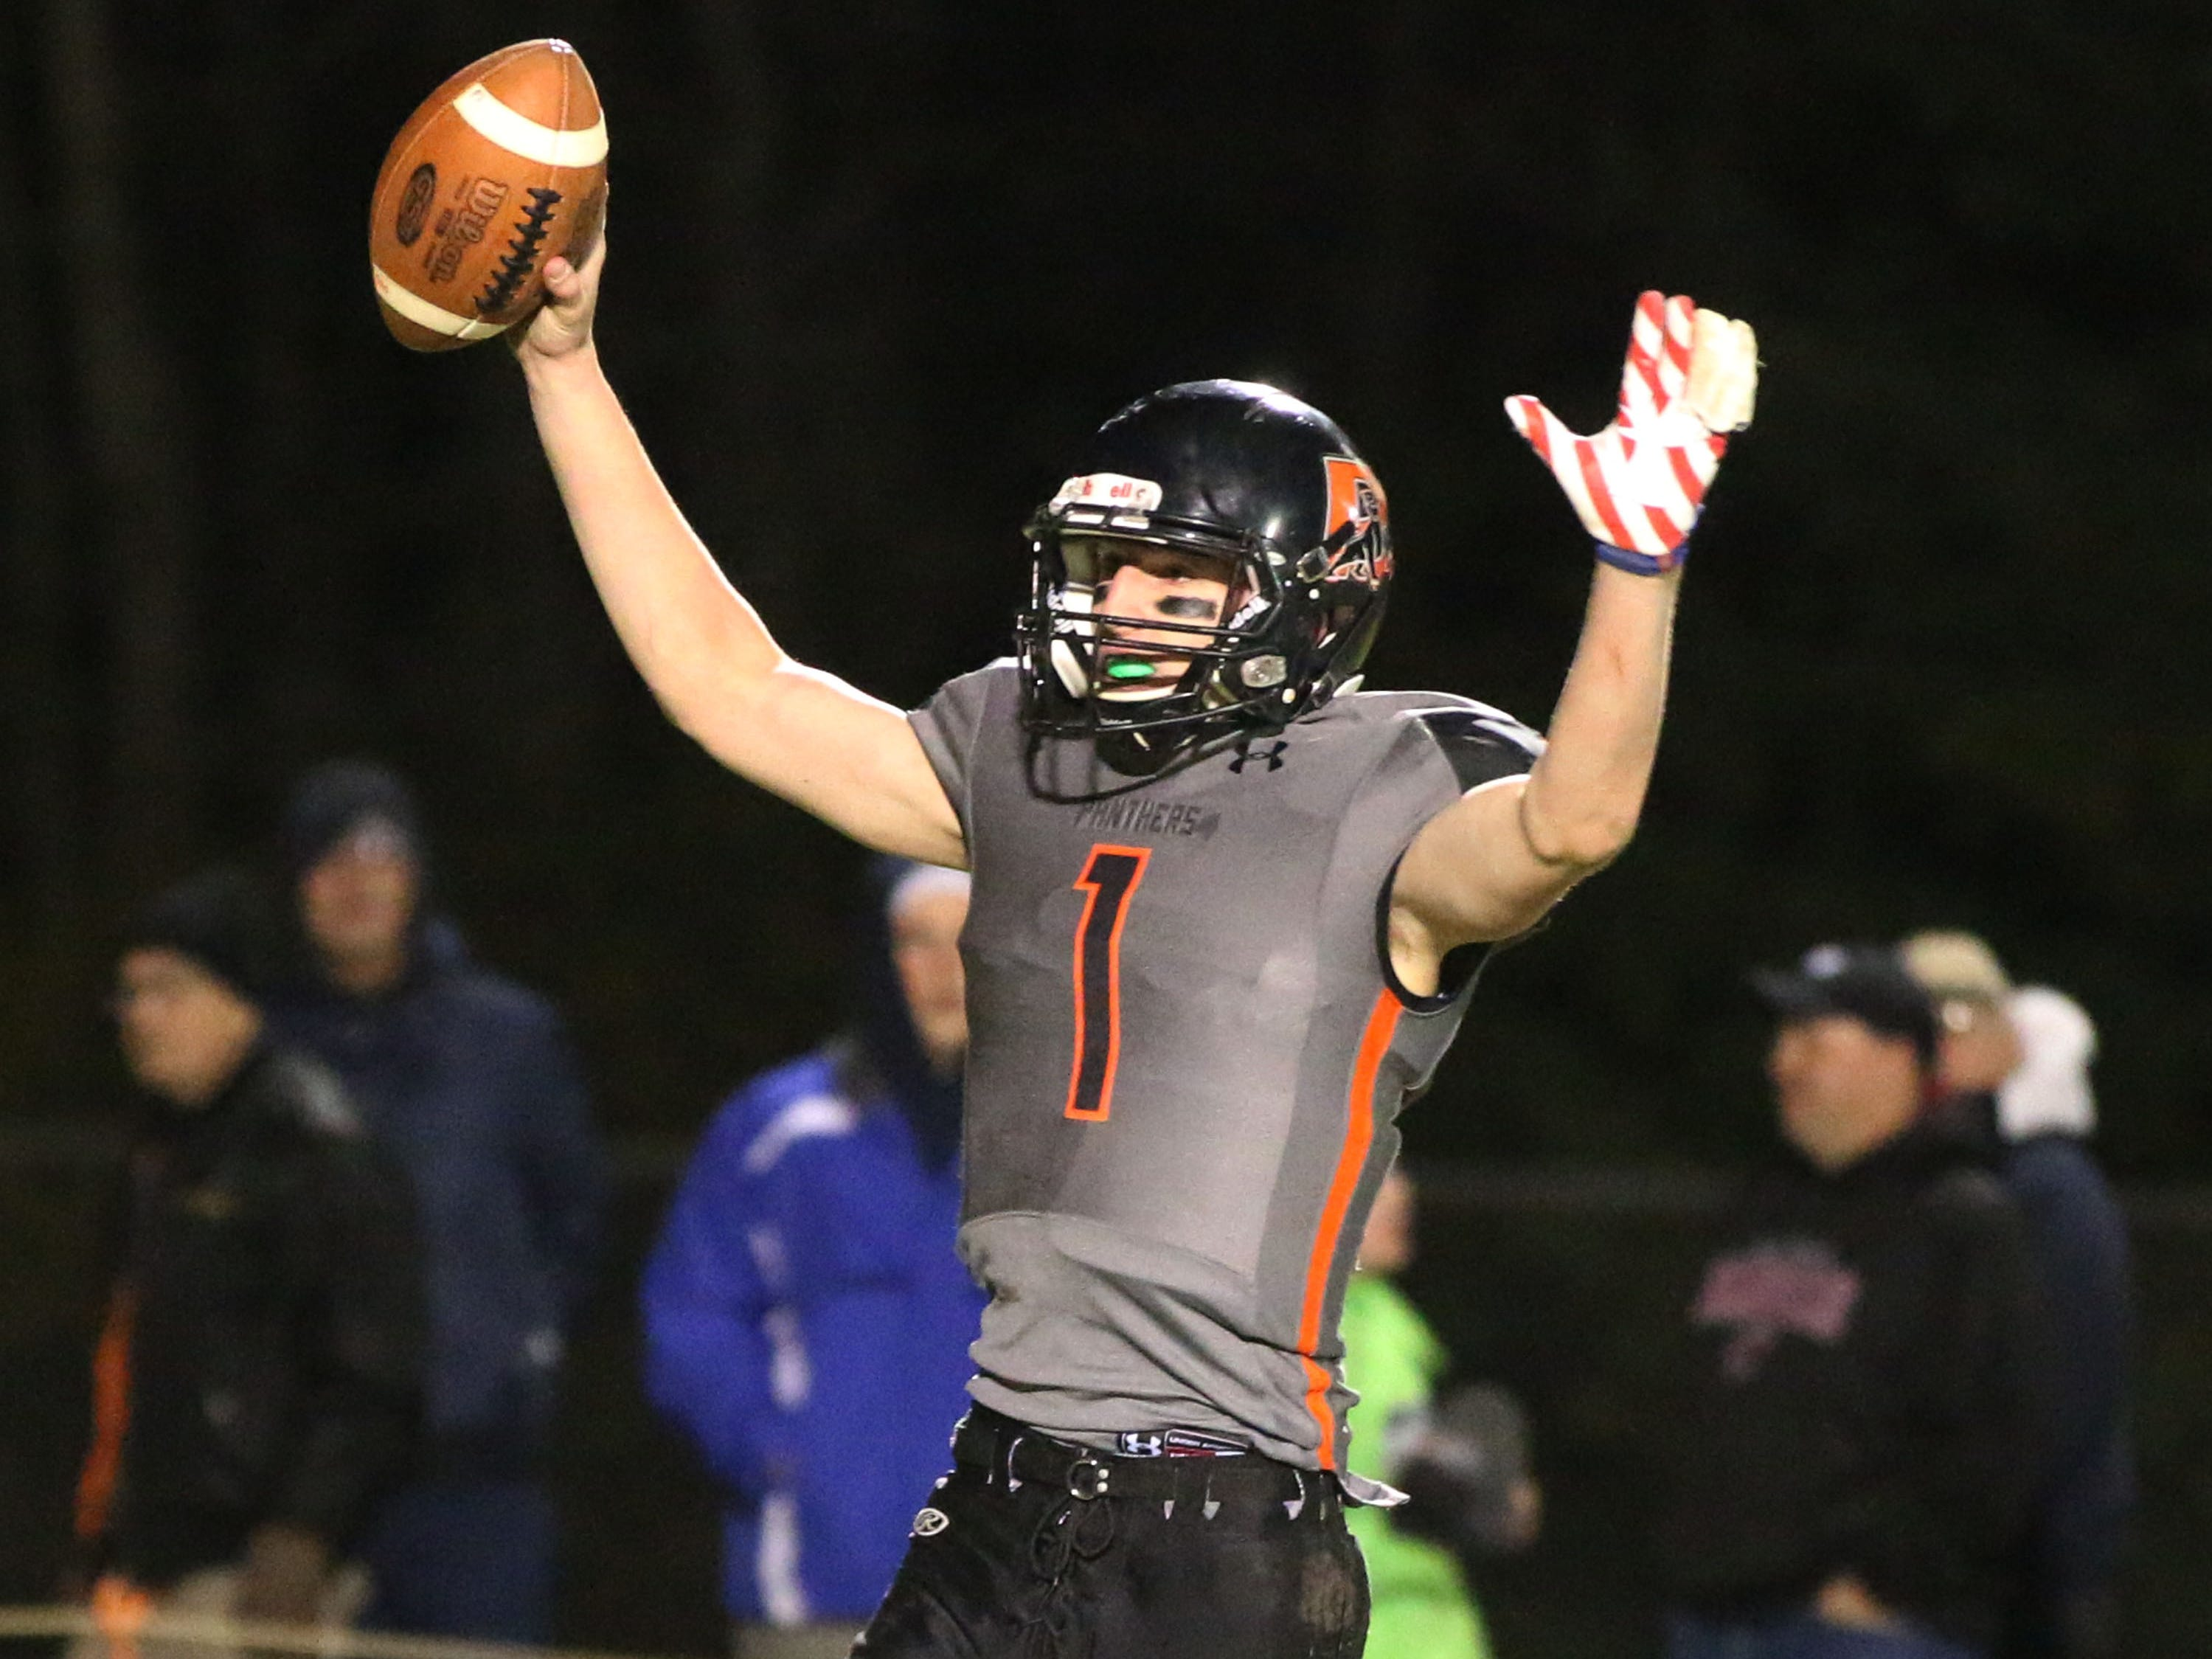 Reedsville's Carson Schanilec (1) celebrates the win over Pittsville, Friday, November 2, 2018, in Reedsville, Wis.